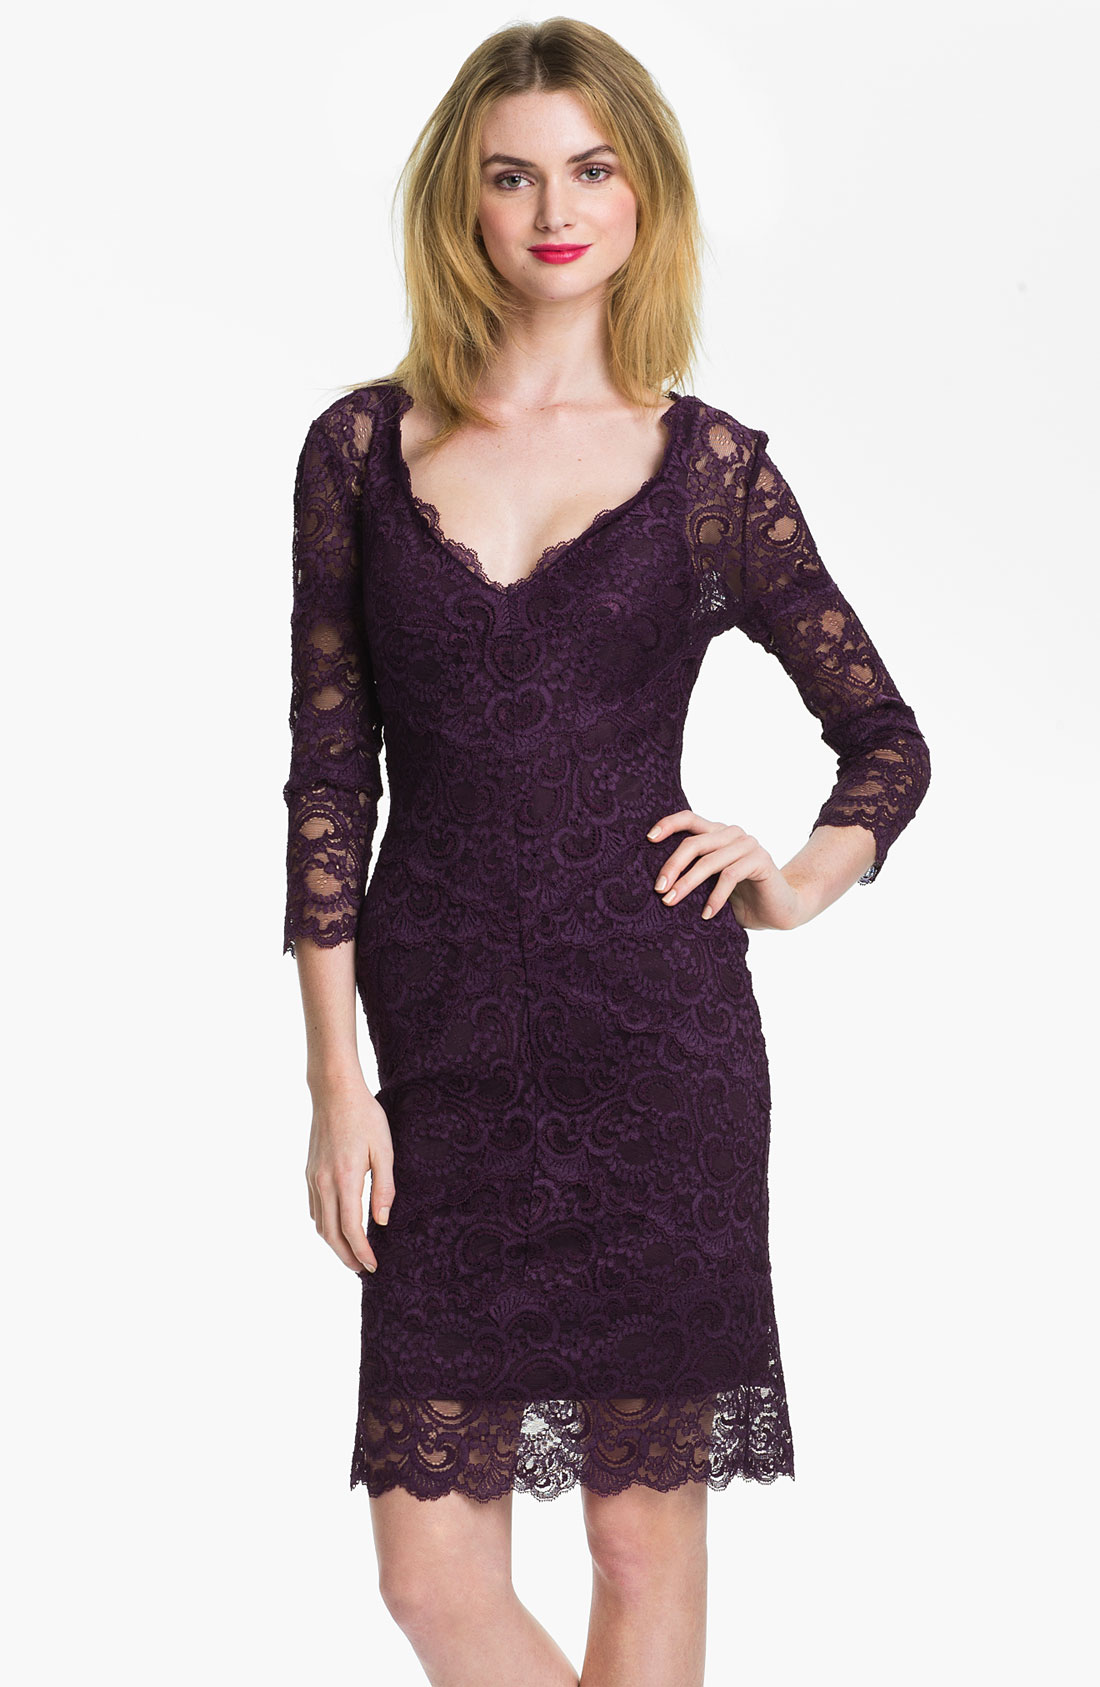 Purple dress with black lace overlay